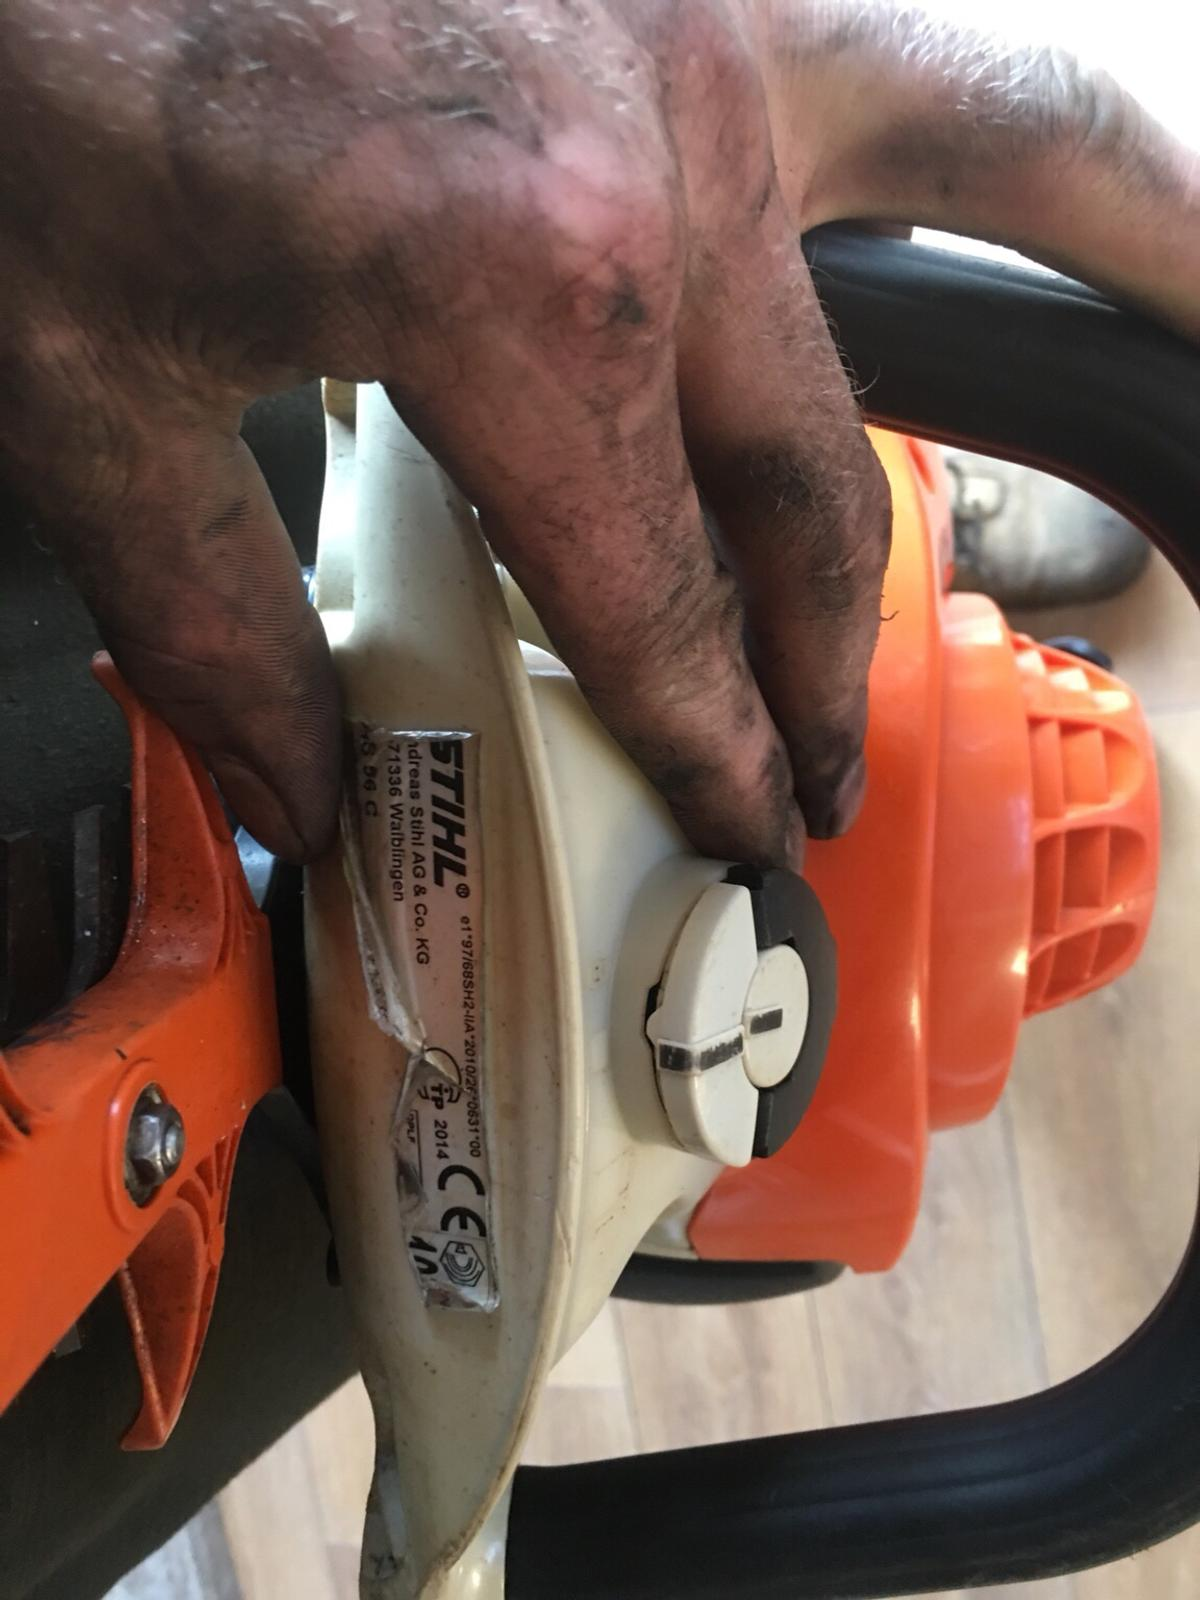 Stihl in DY11 Forest for £160 00 for sale - Shpock